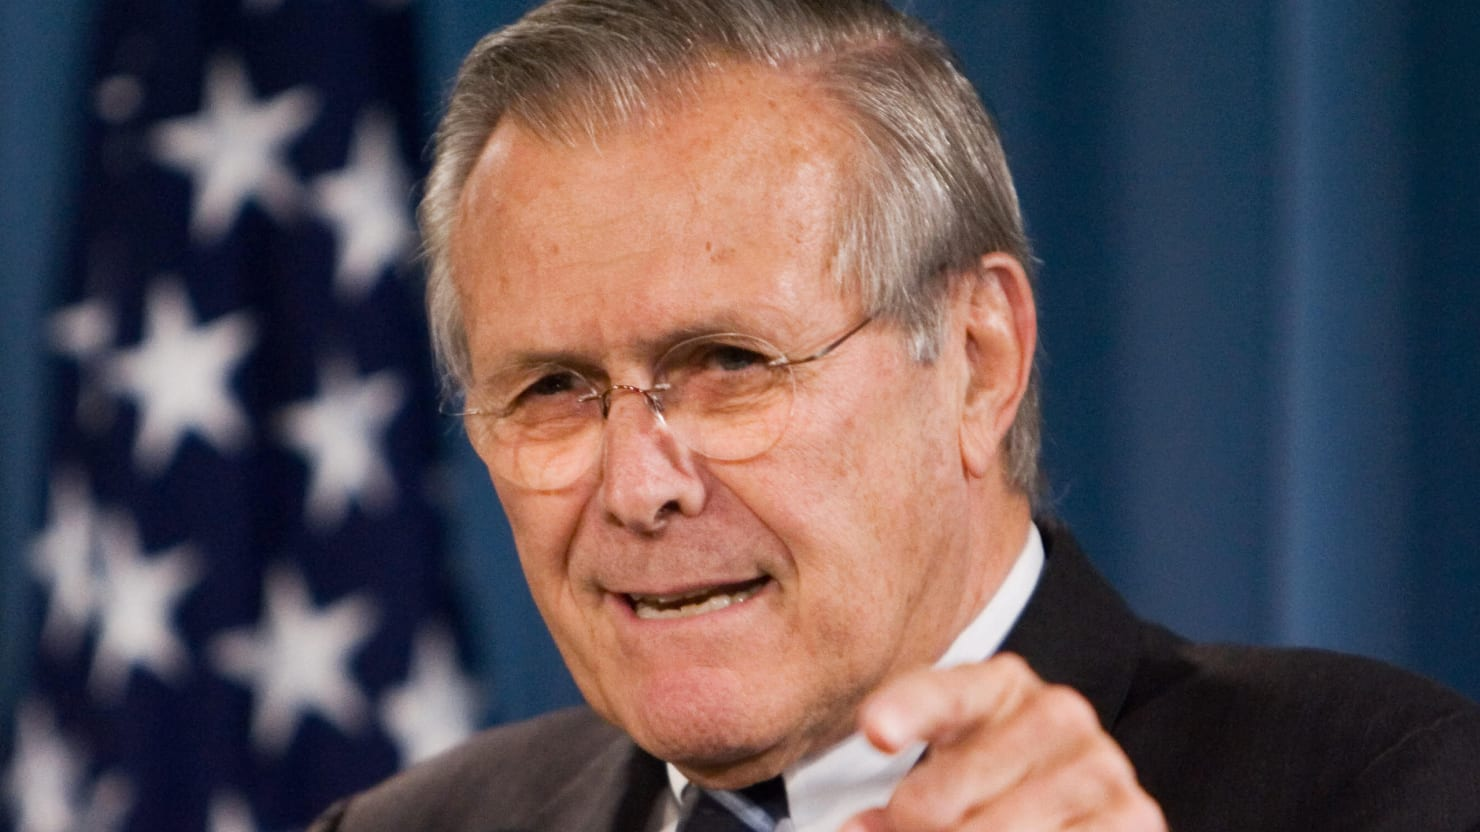 Exclusive: Watch Donald Rumsfeld Lie About Saddam Hussein and 9/11 in 'The Unknown Known'